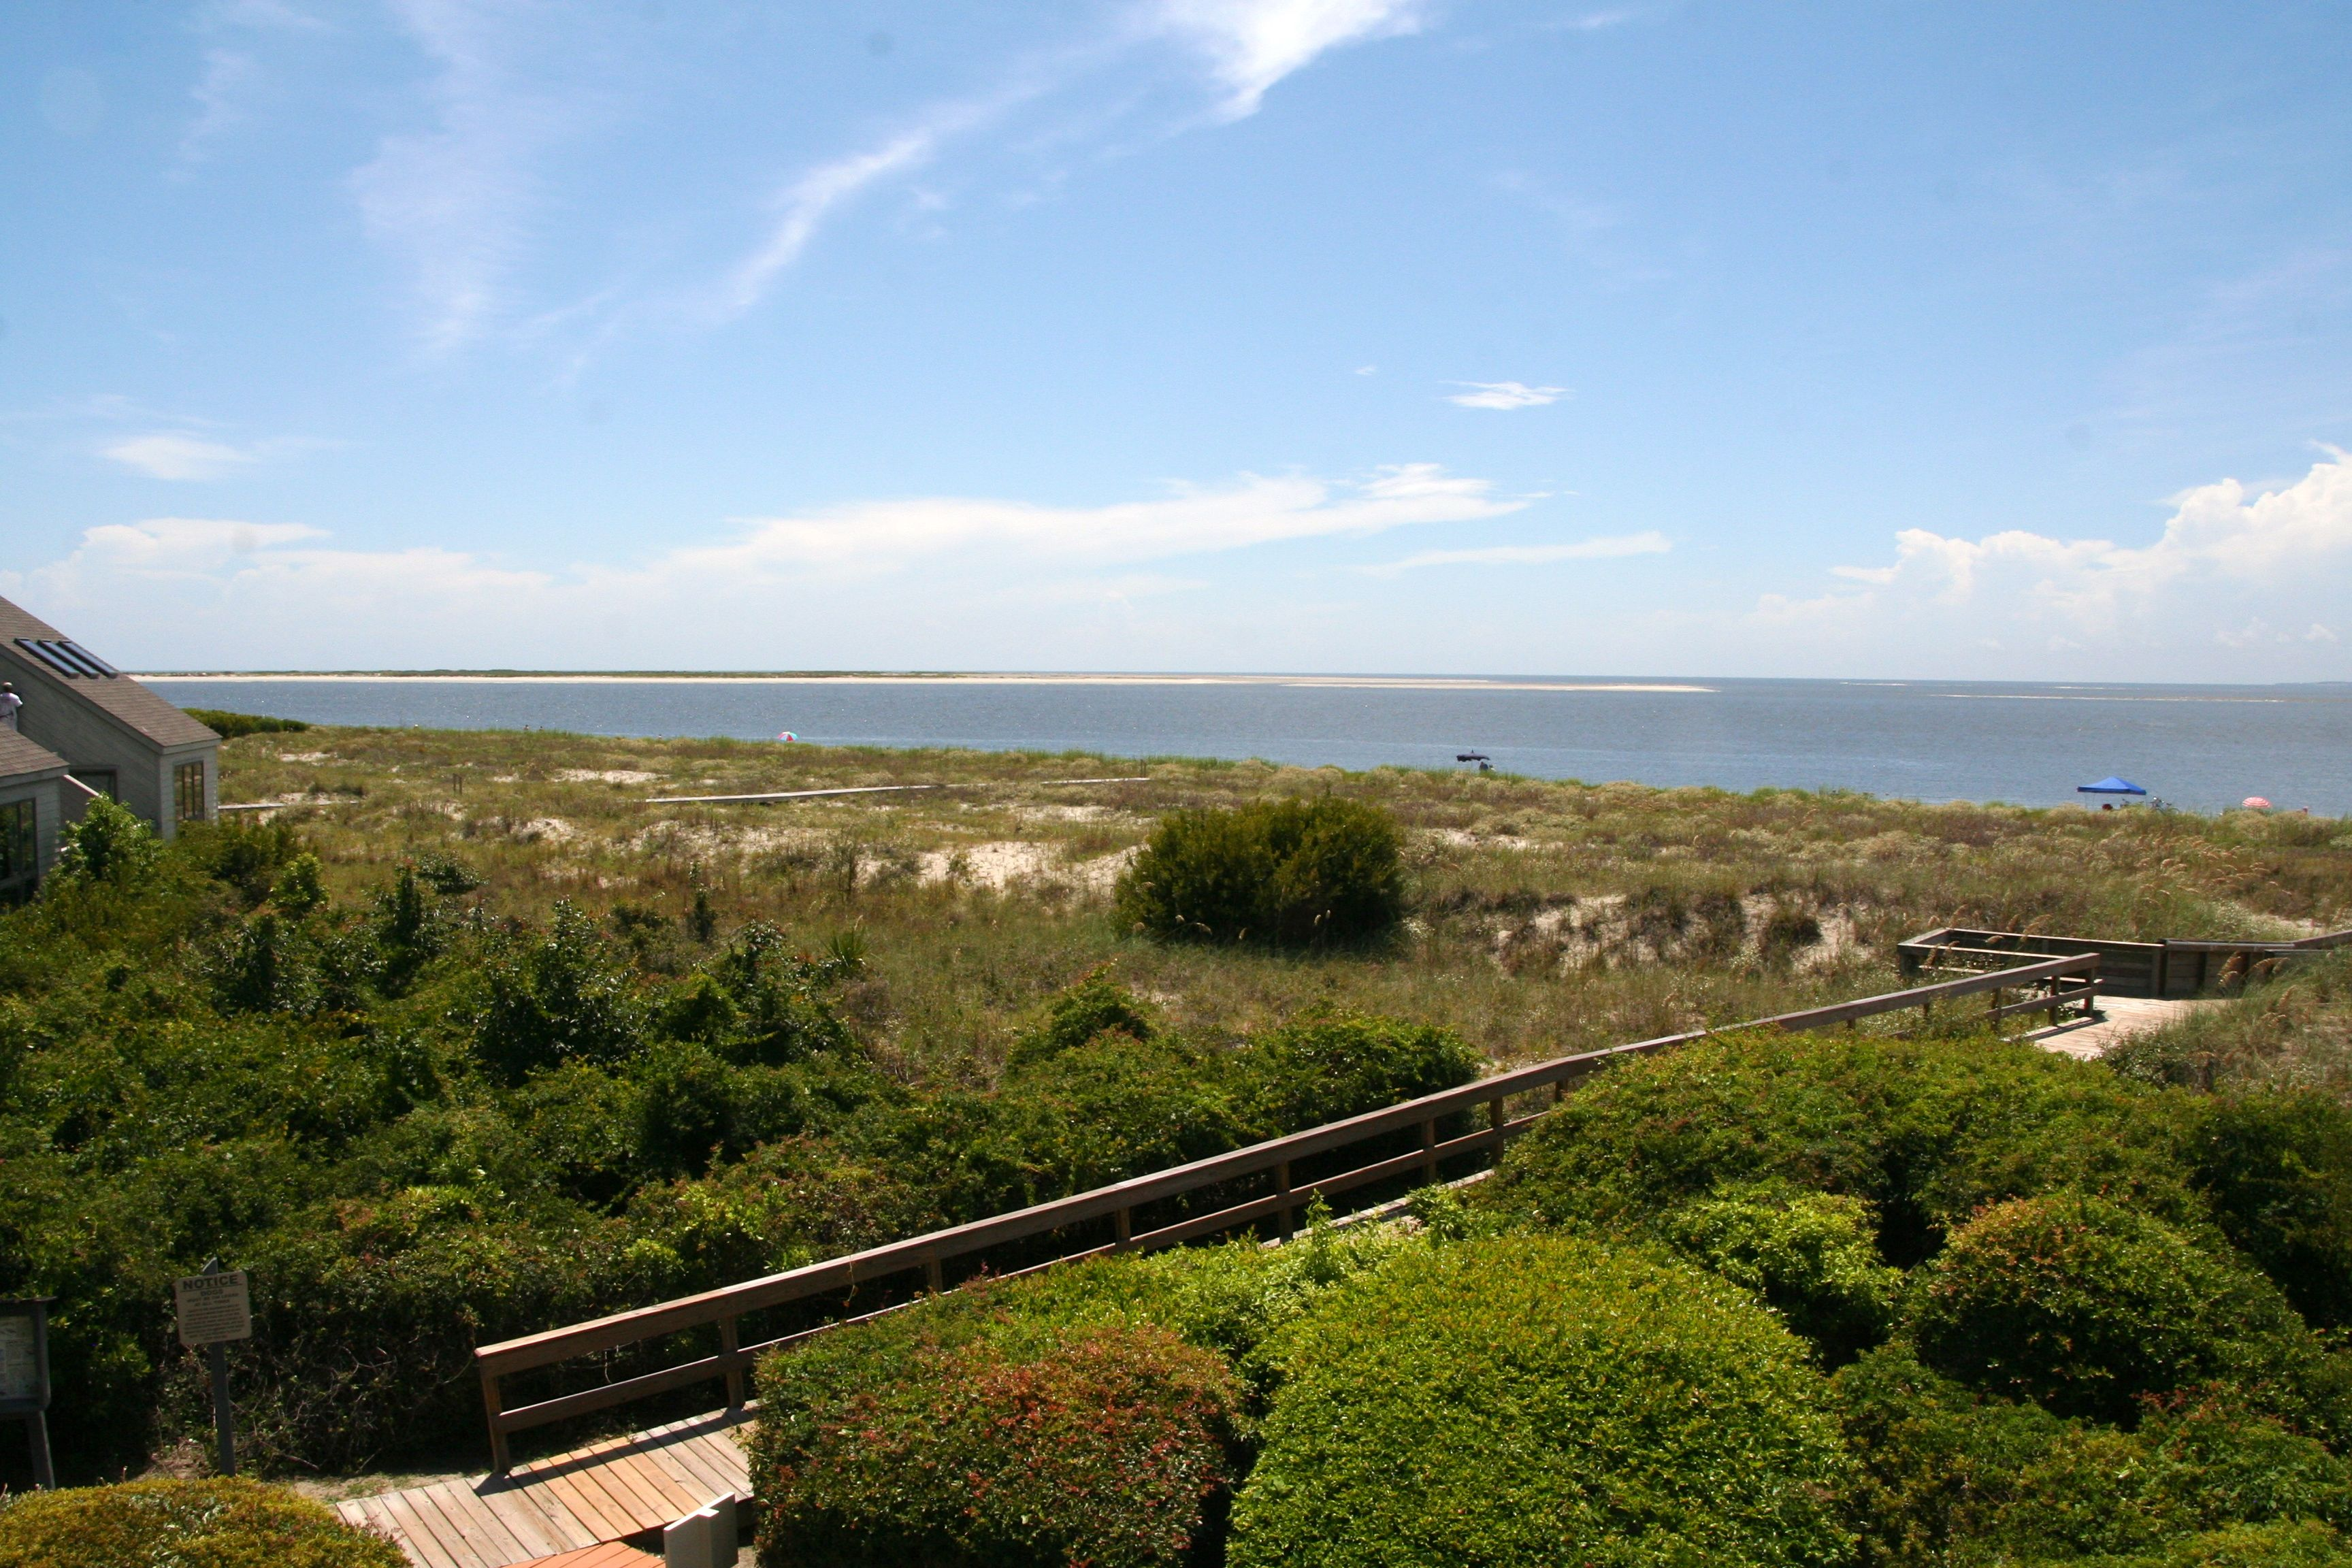 The view from the deck is amazing. To the left is the ocean and Devereux banks.